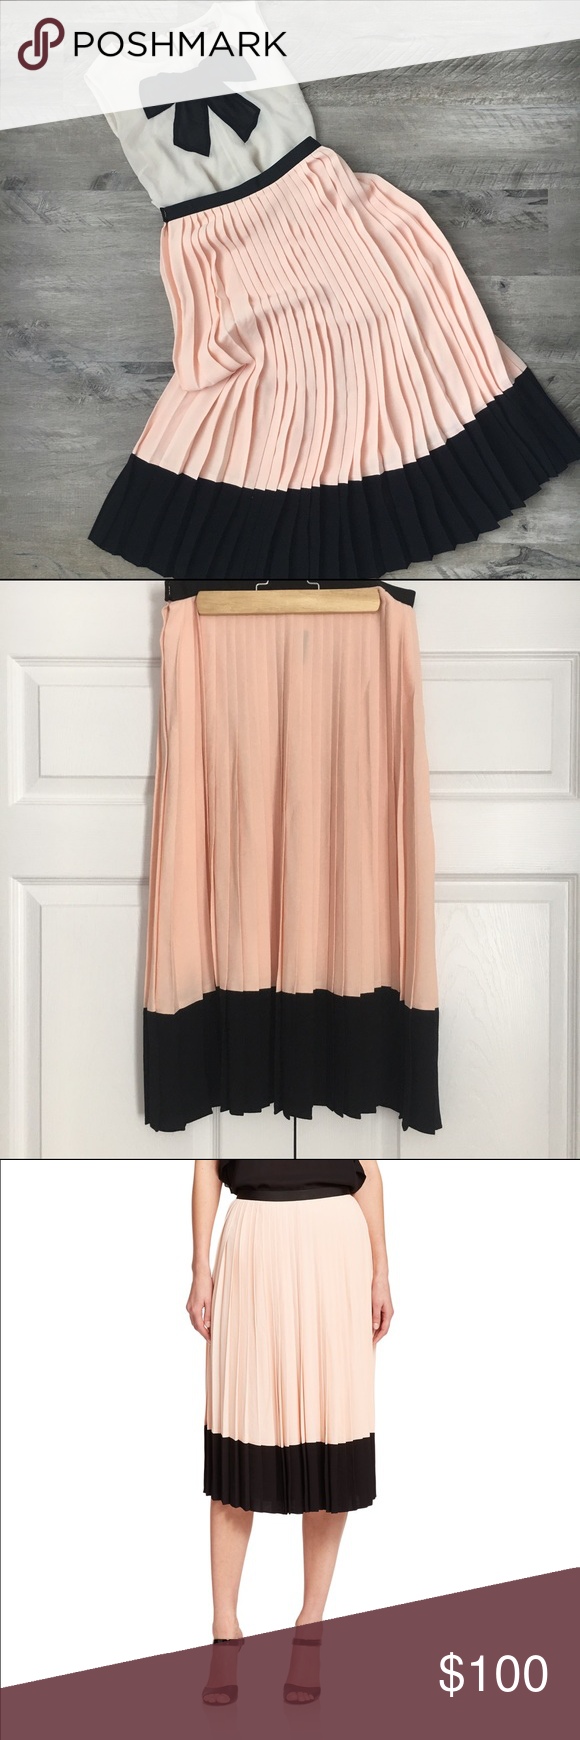 1770de7d3 Kate Spade Pleated Crepe Skirt Beautiful color blocked knife pleat skirt in  a soft muted pink and black. New with tags. Viscose. kate spade Skirts Midi